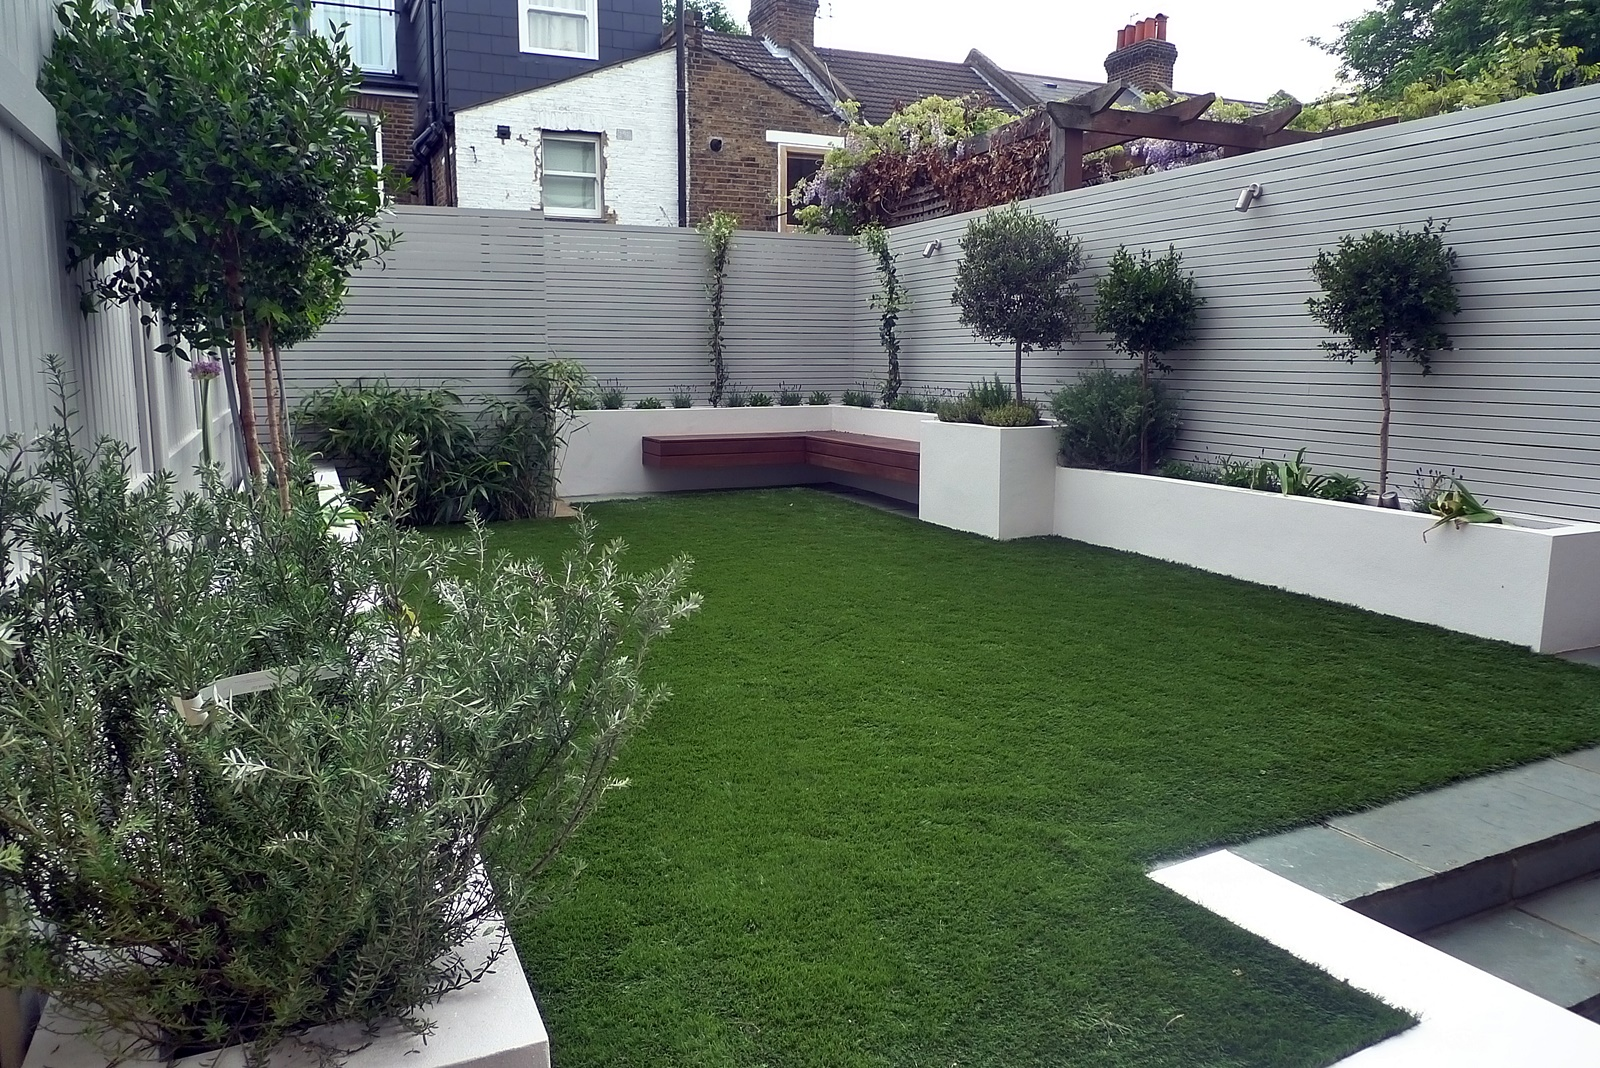 London garden blog london garden blog gardens from for Contemporary garden design ideas